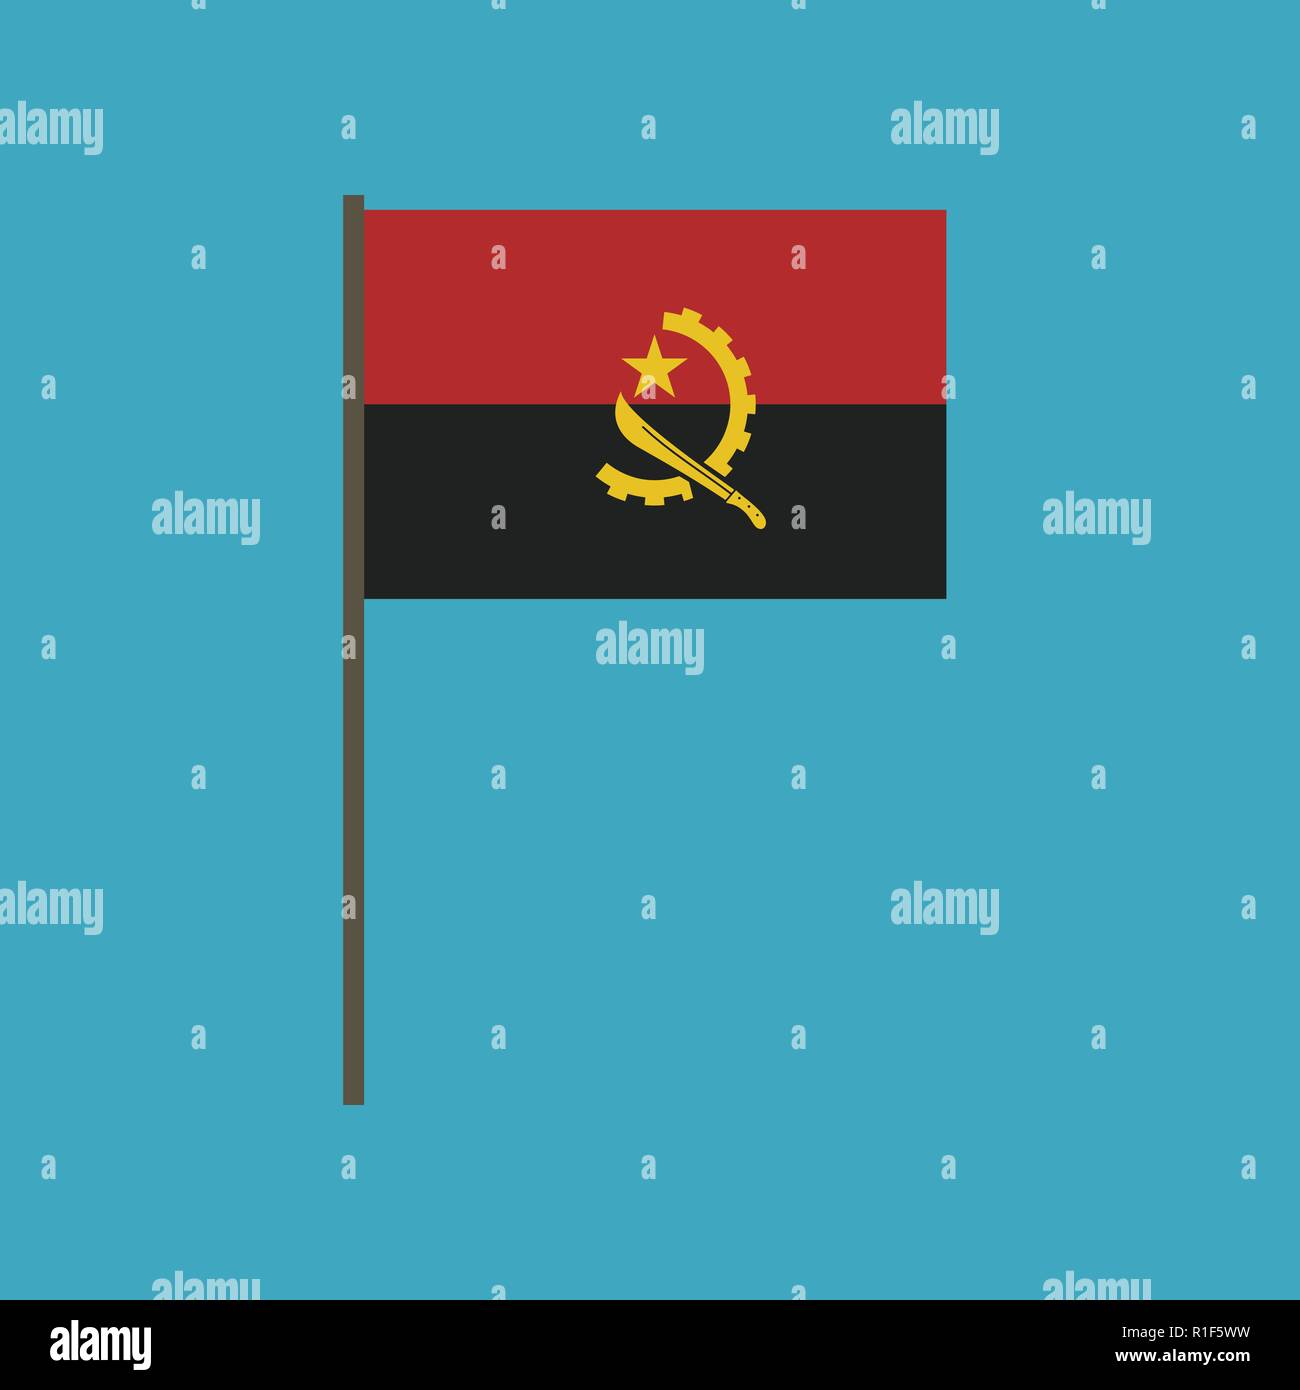 Angola flag icon in flat design. Independence day or National day holiday concept. - Stock Vector